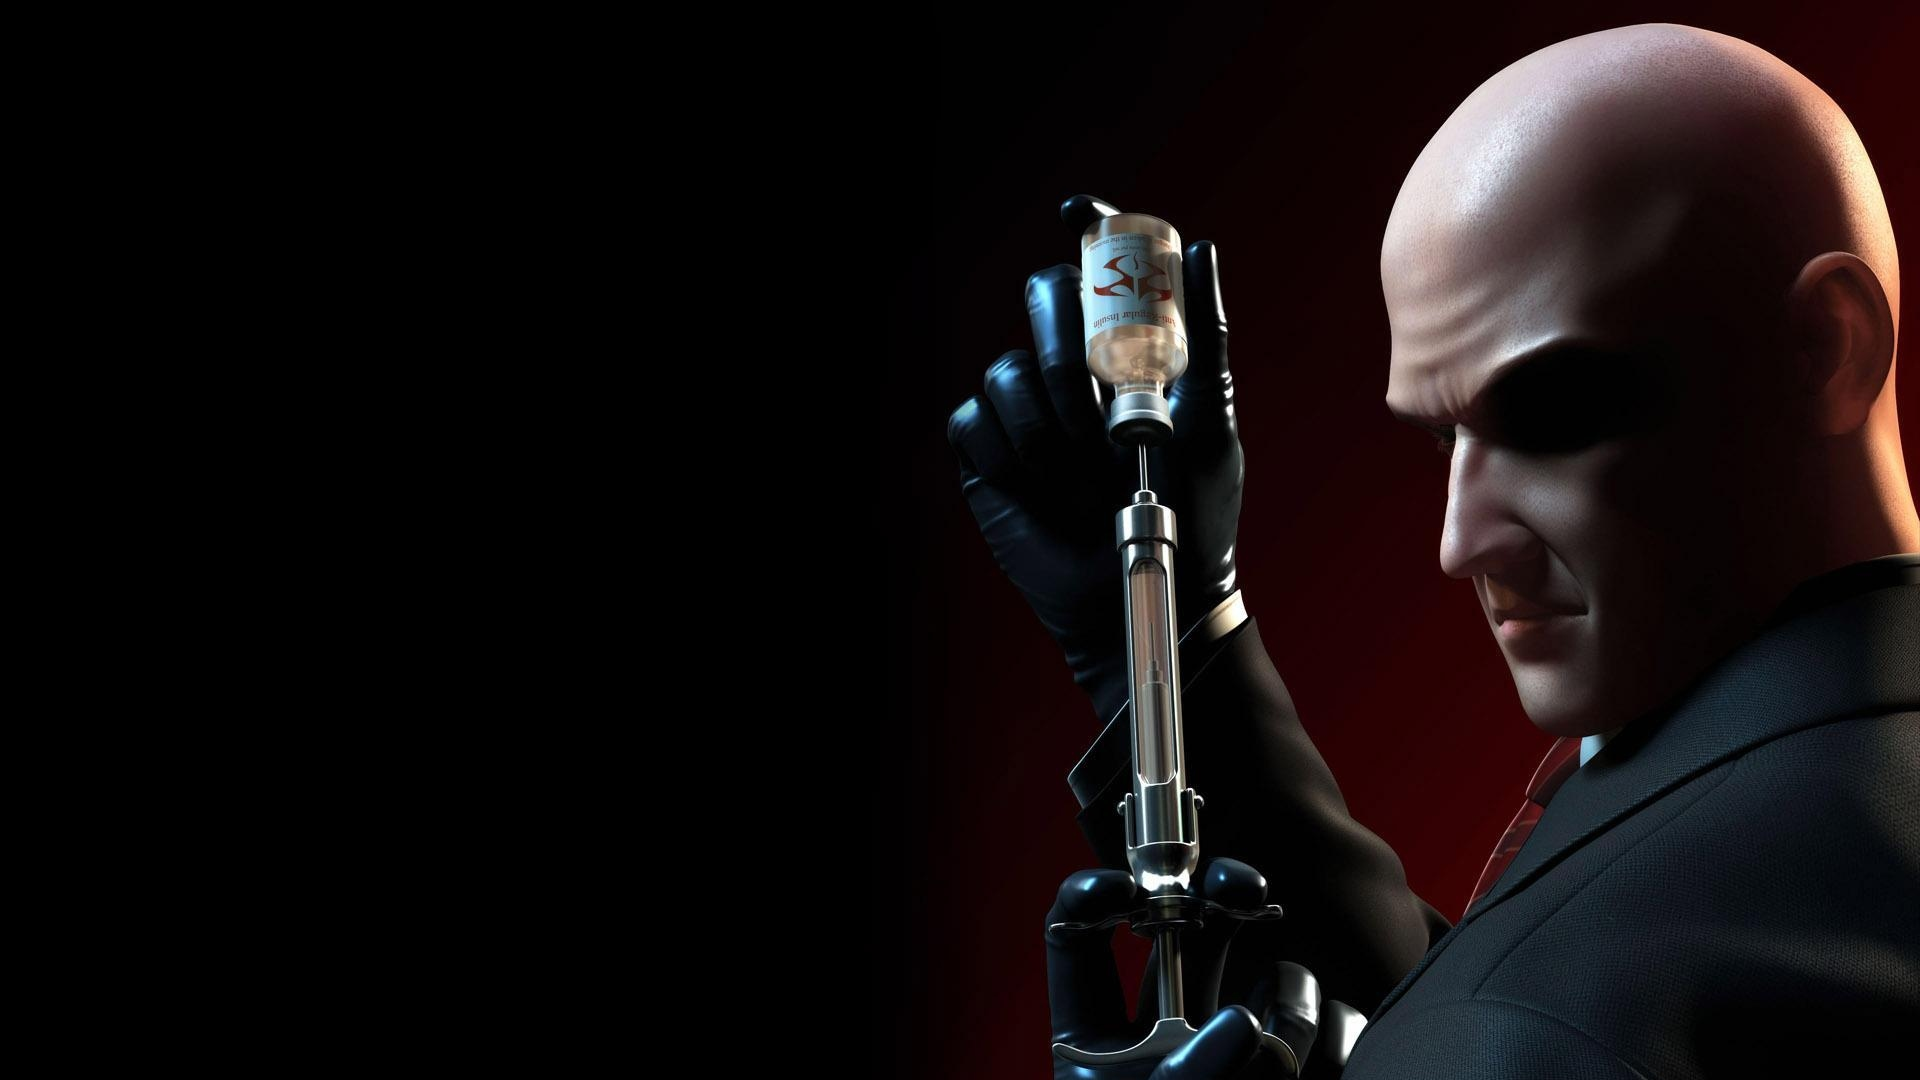 Full HD 1080p Hitman Wallpapers HD, Desktop Backgrounds 1920x1080